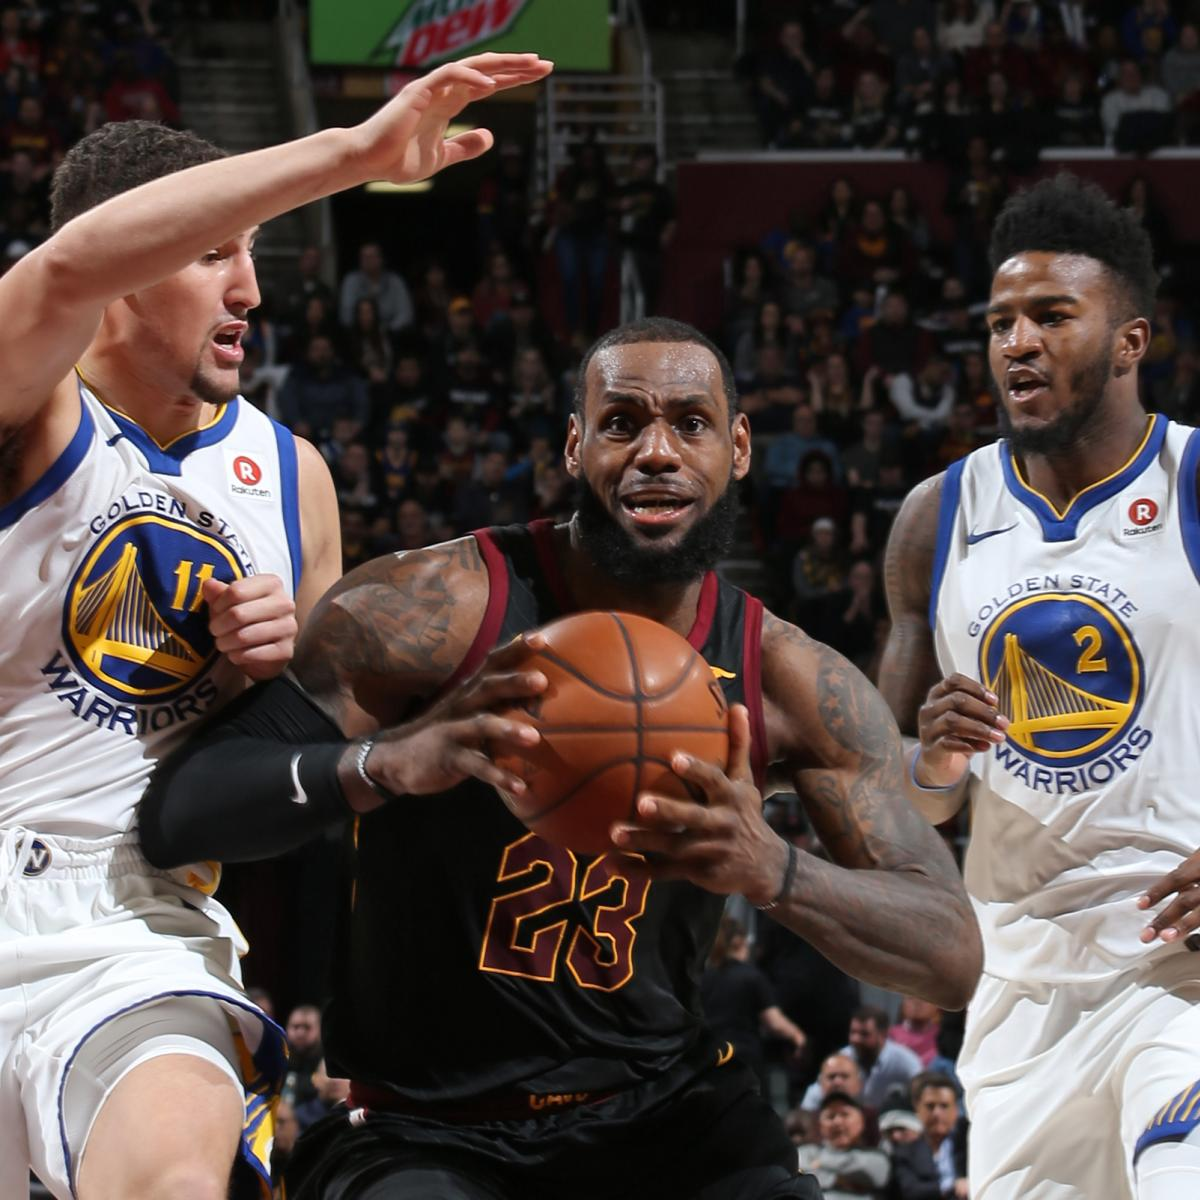 43e38d8169a Every NBA Contender's Odds of Landing LeBron James in 2018 Free Agency